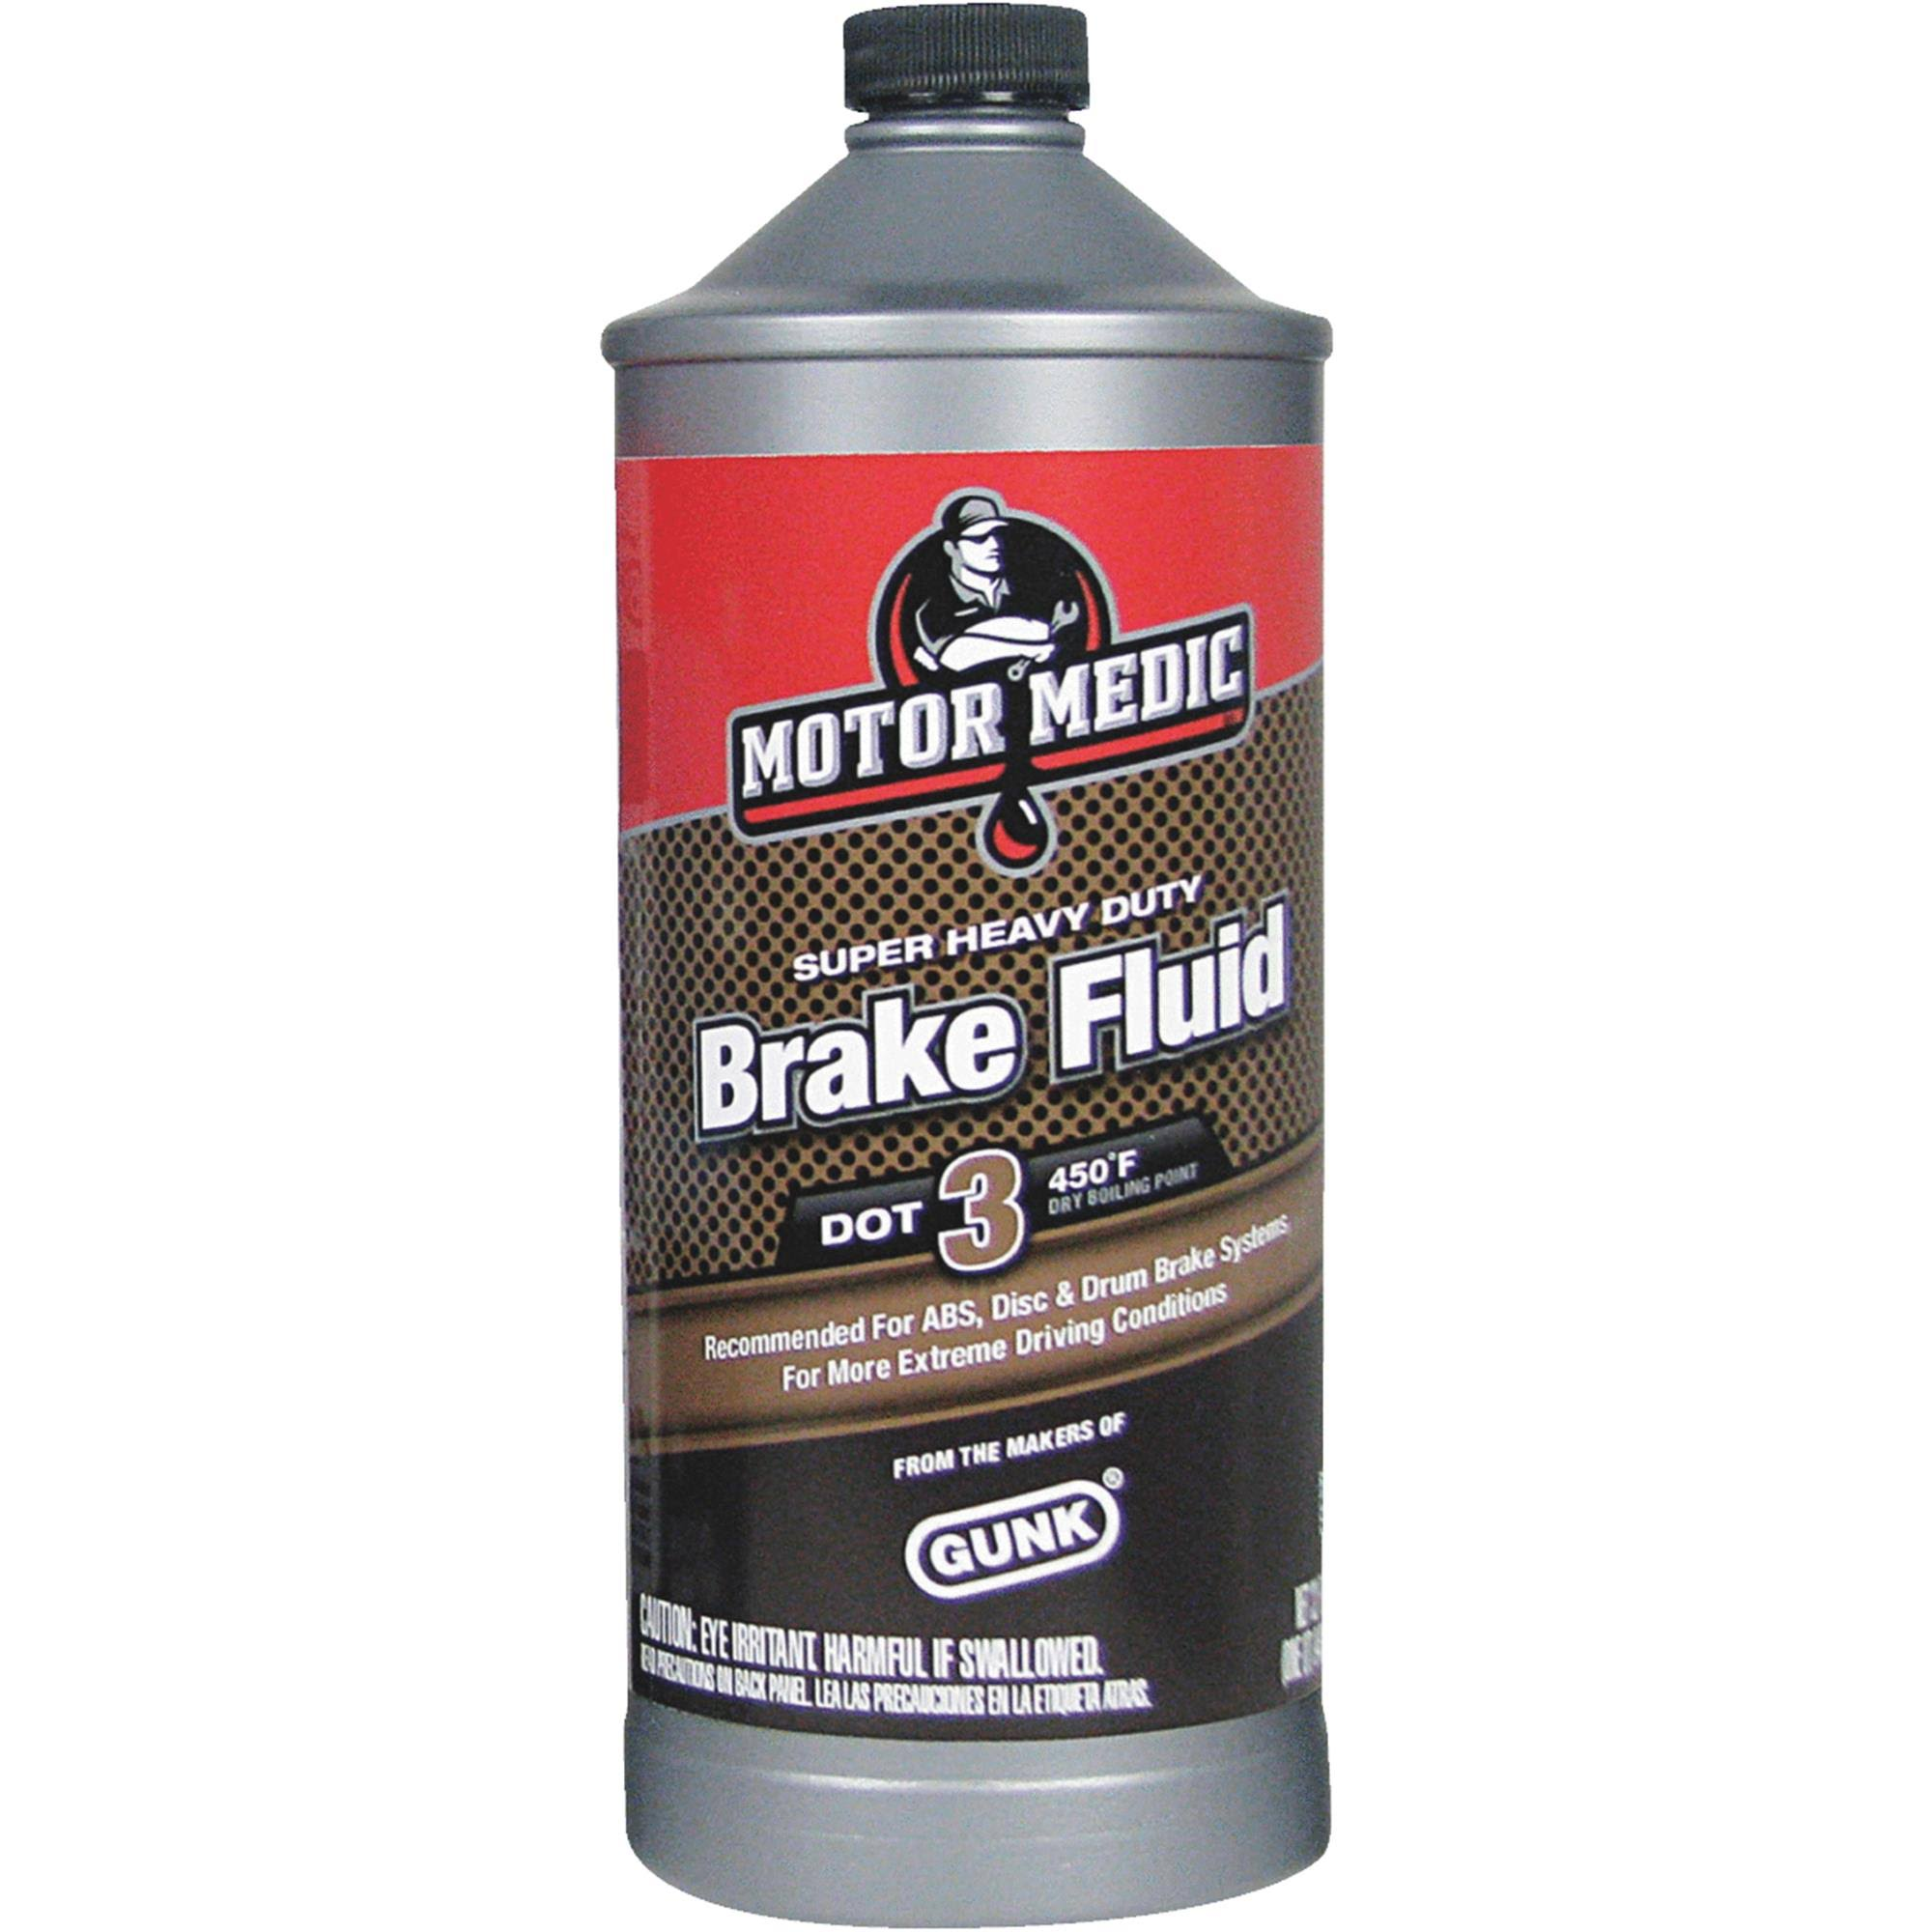 Gunk Super Heavy Duty Brake Fluid - Dot 3, 32oz